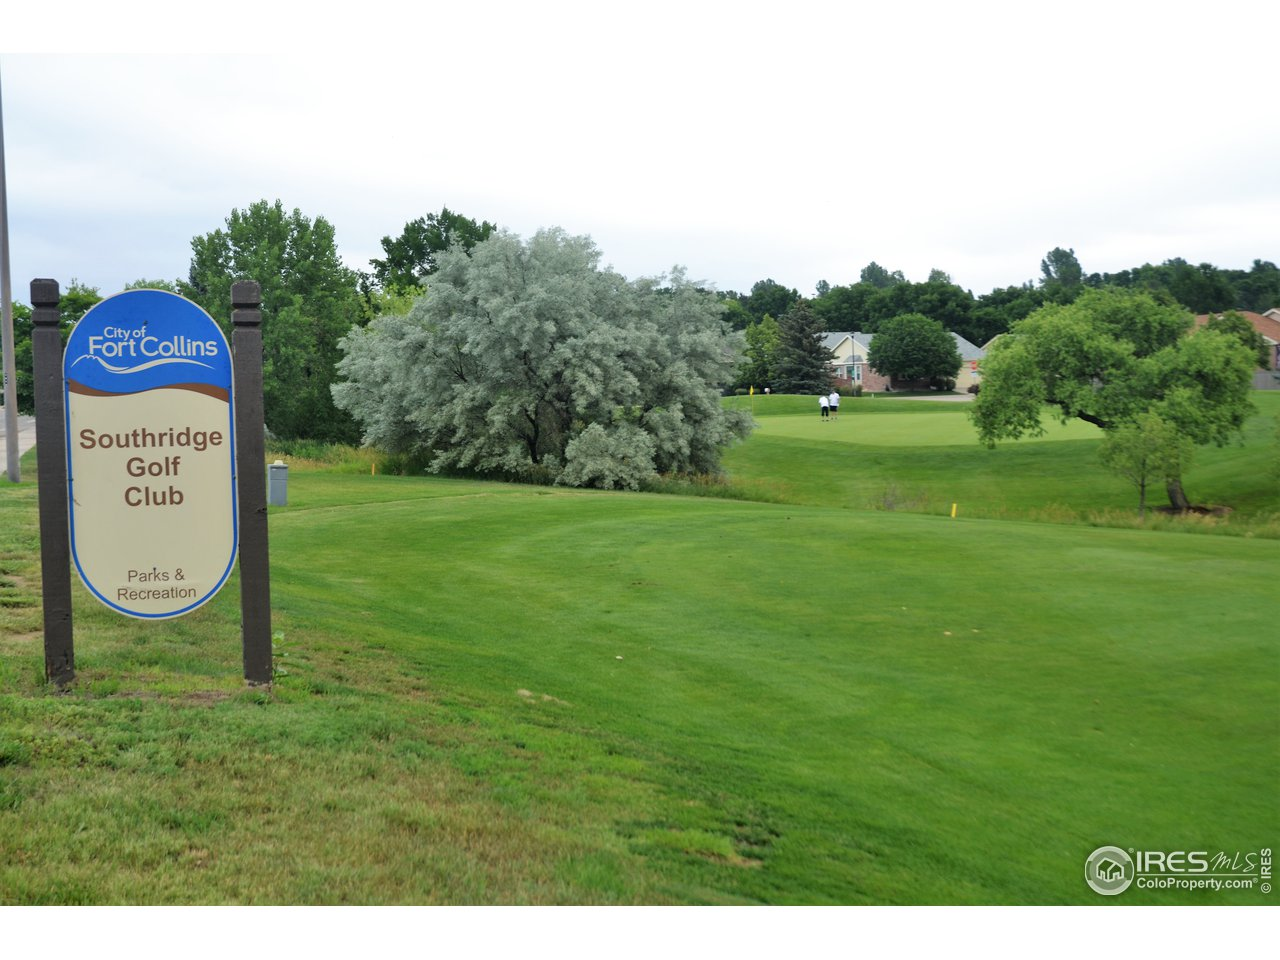 Nearby public 18-hole golf course